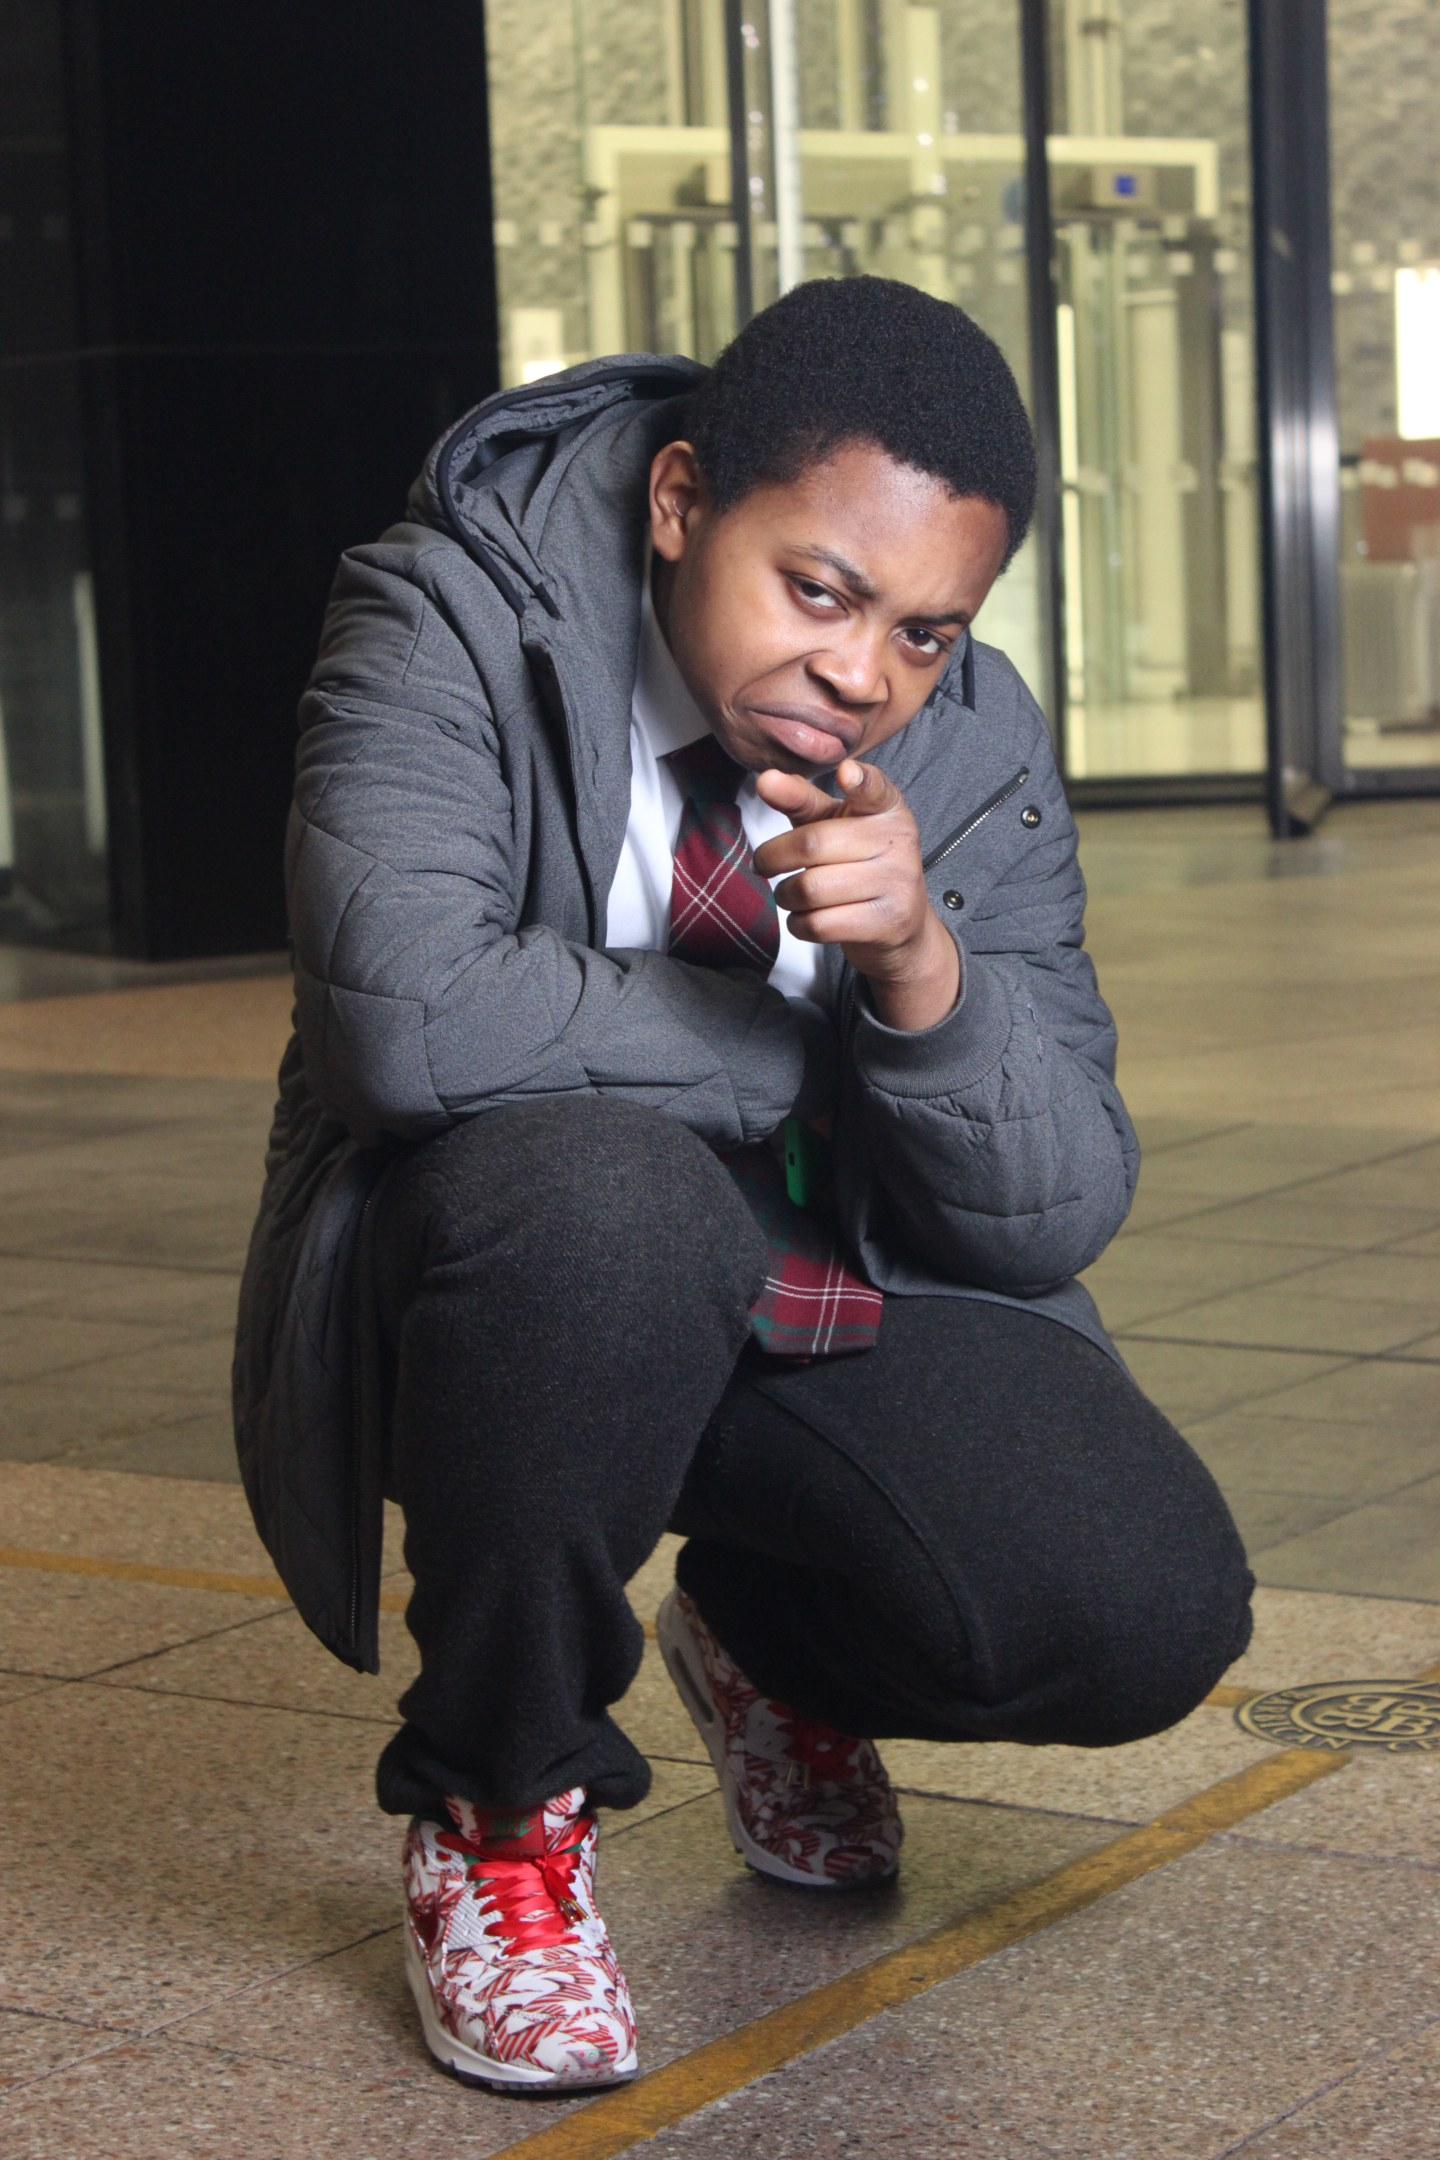 How The Chicken Connoisseur Is Translating Viral Fame Into A Long-Lasting Career